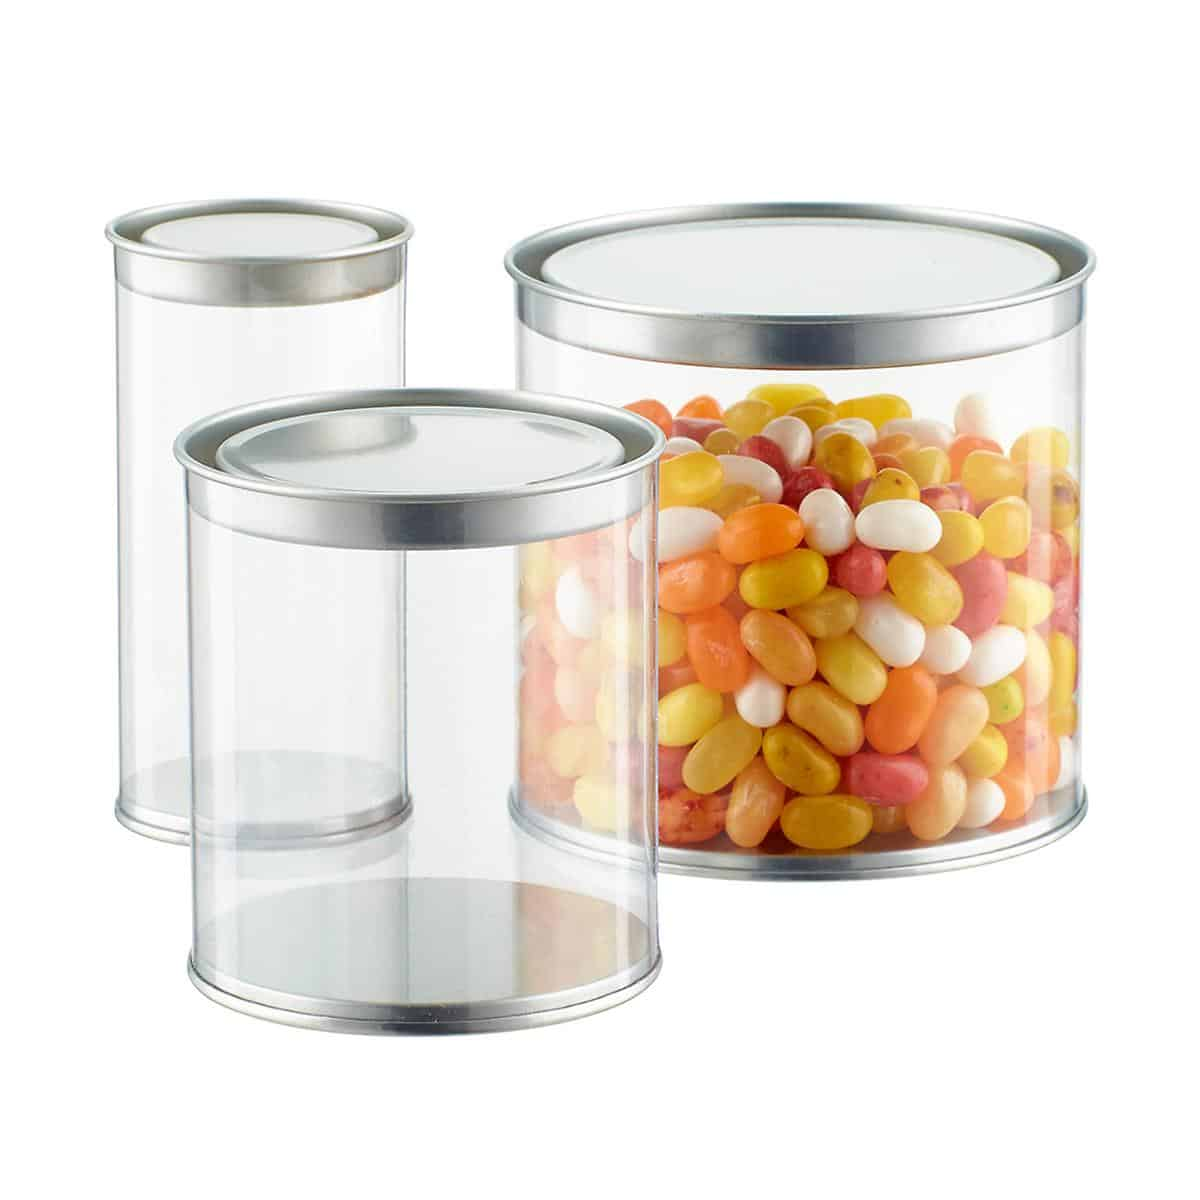 Containers with metal lids.